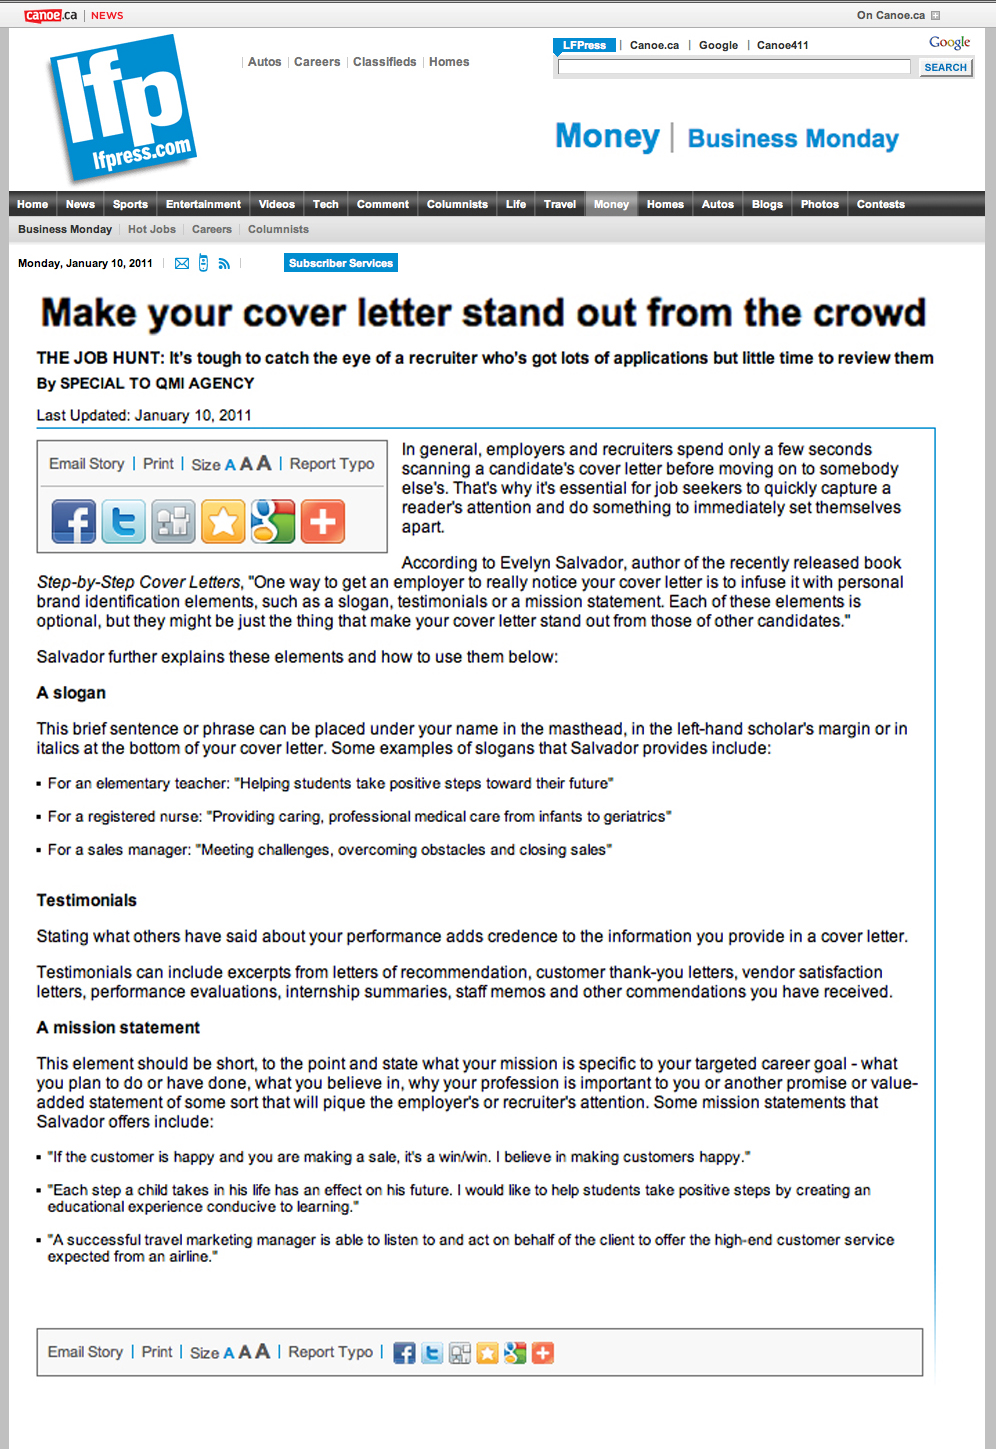 ifpress.com - make your cover letter stand out.jpg